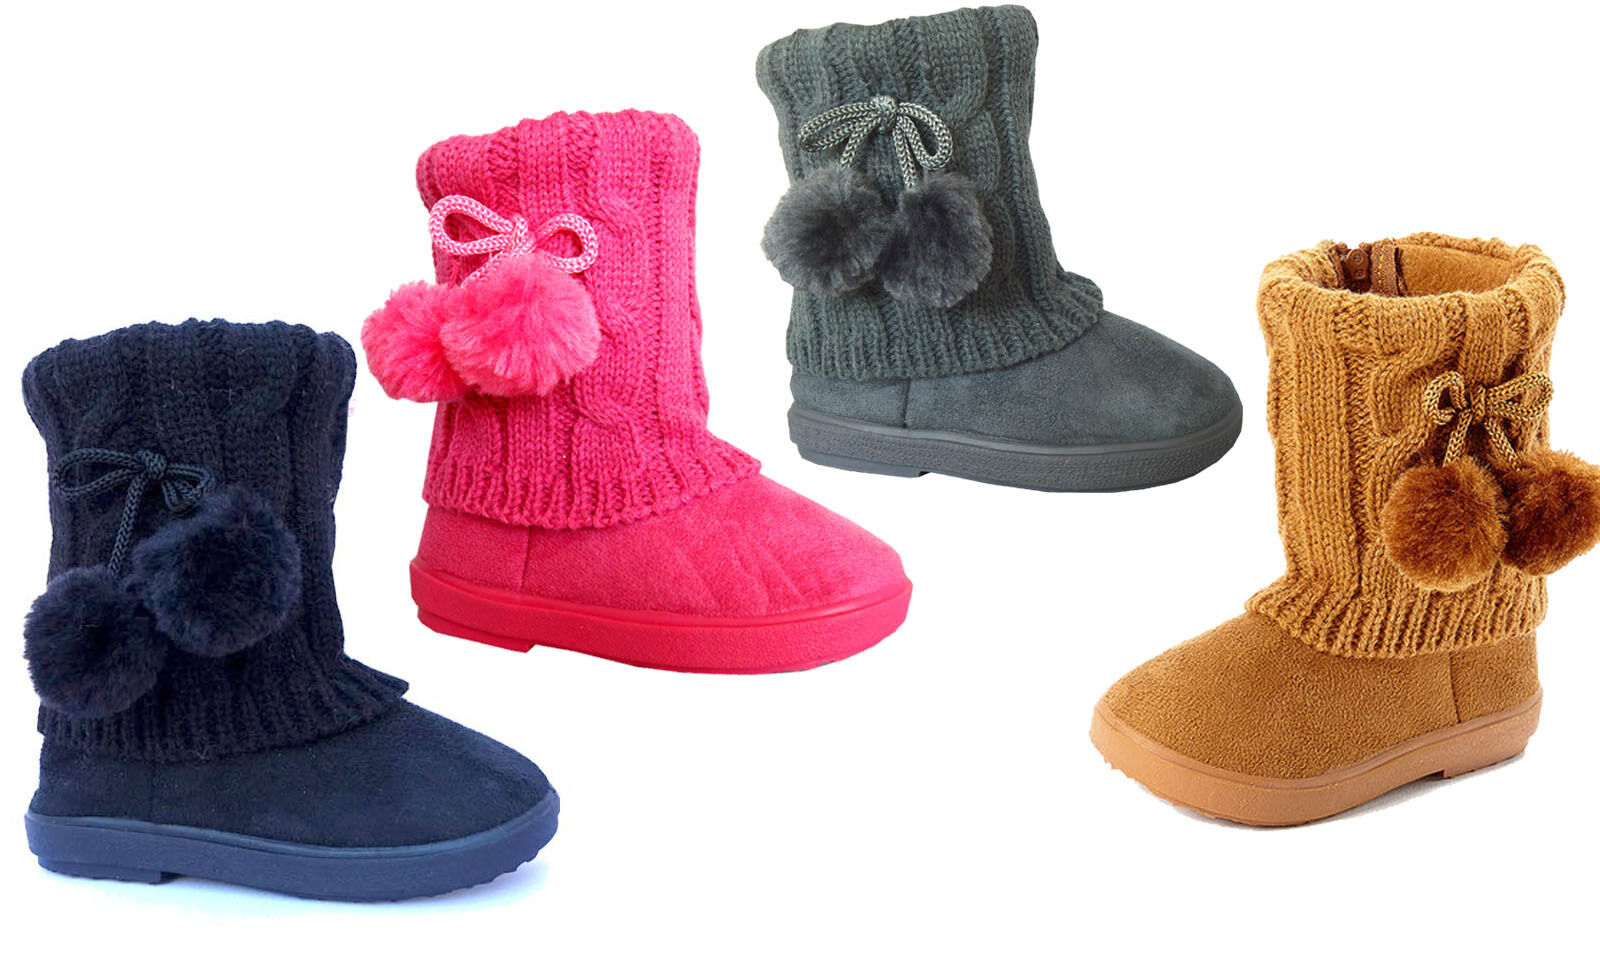 New Kids Boots Toddler Girls Pom Pom Faux Fur Suede Knitting